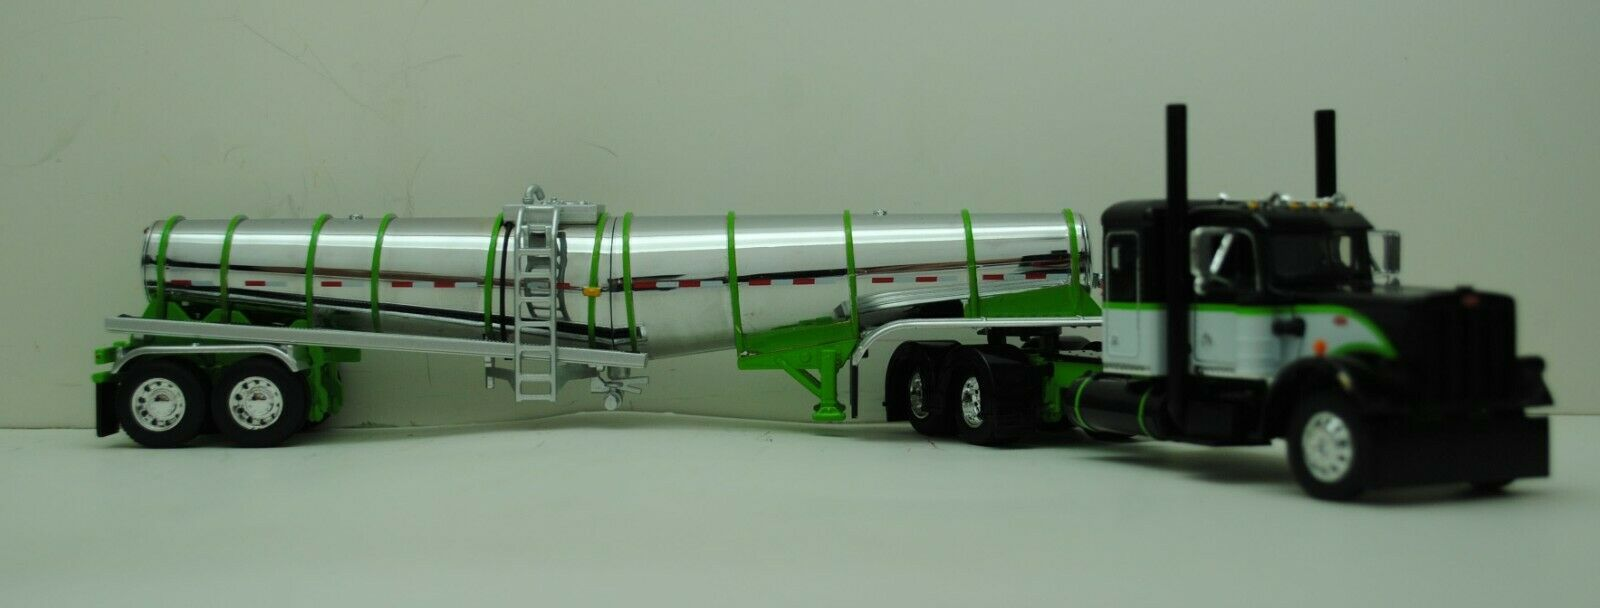 DCP 1/64 SCALE 359 PETERBILT SMALL BUNK LIME GREEN, BLACK, WHITE & POLAR TANKER